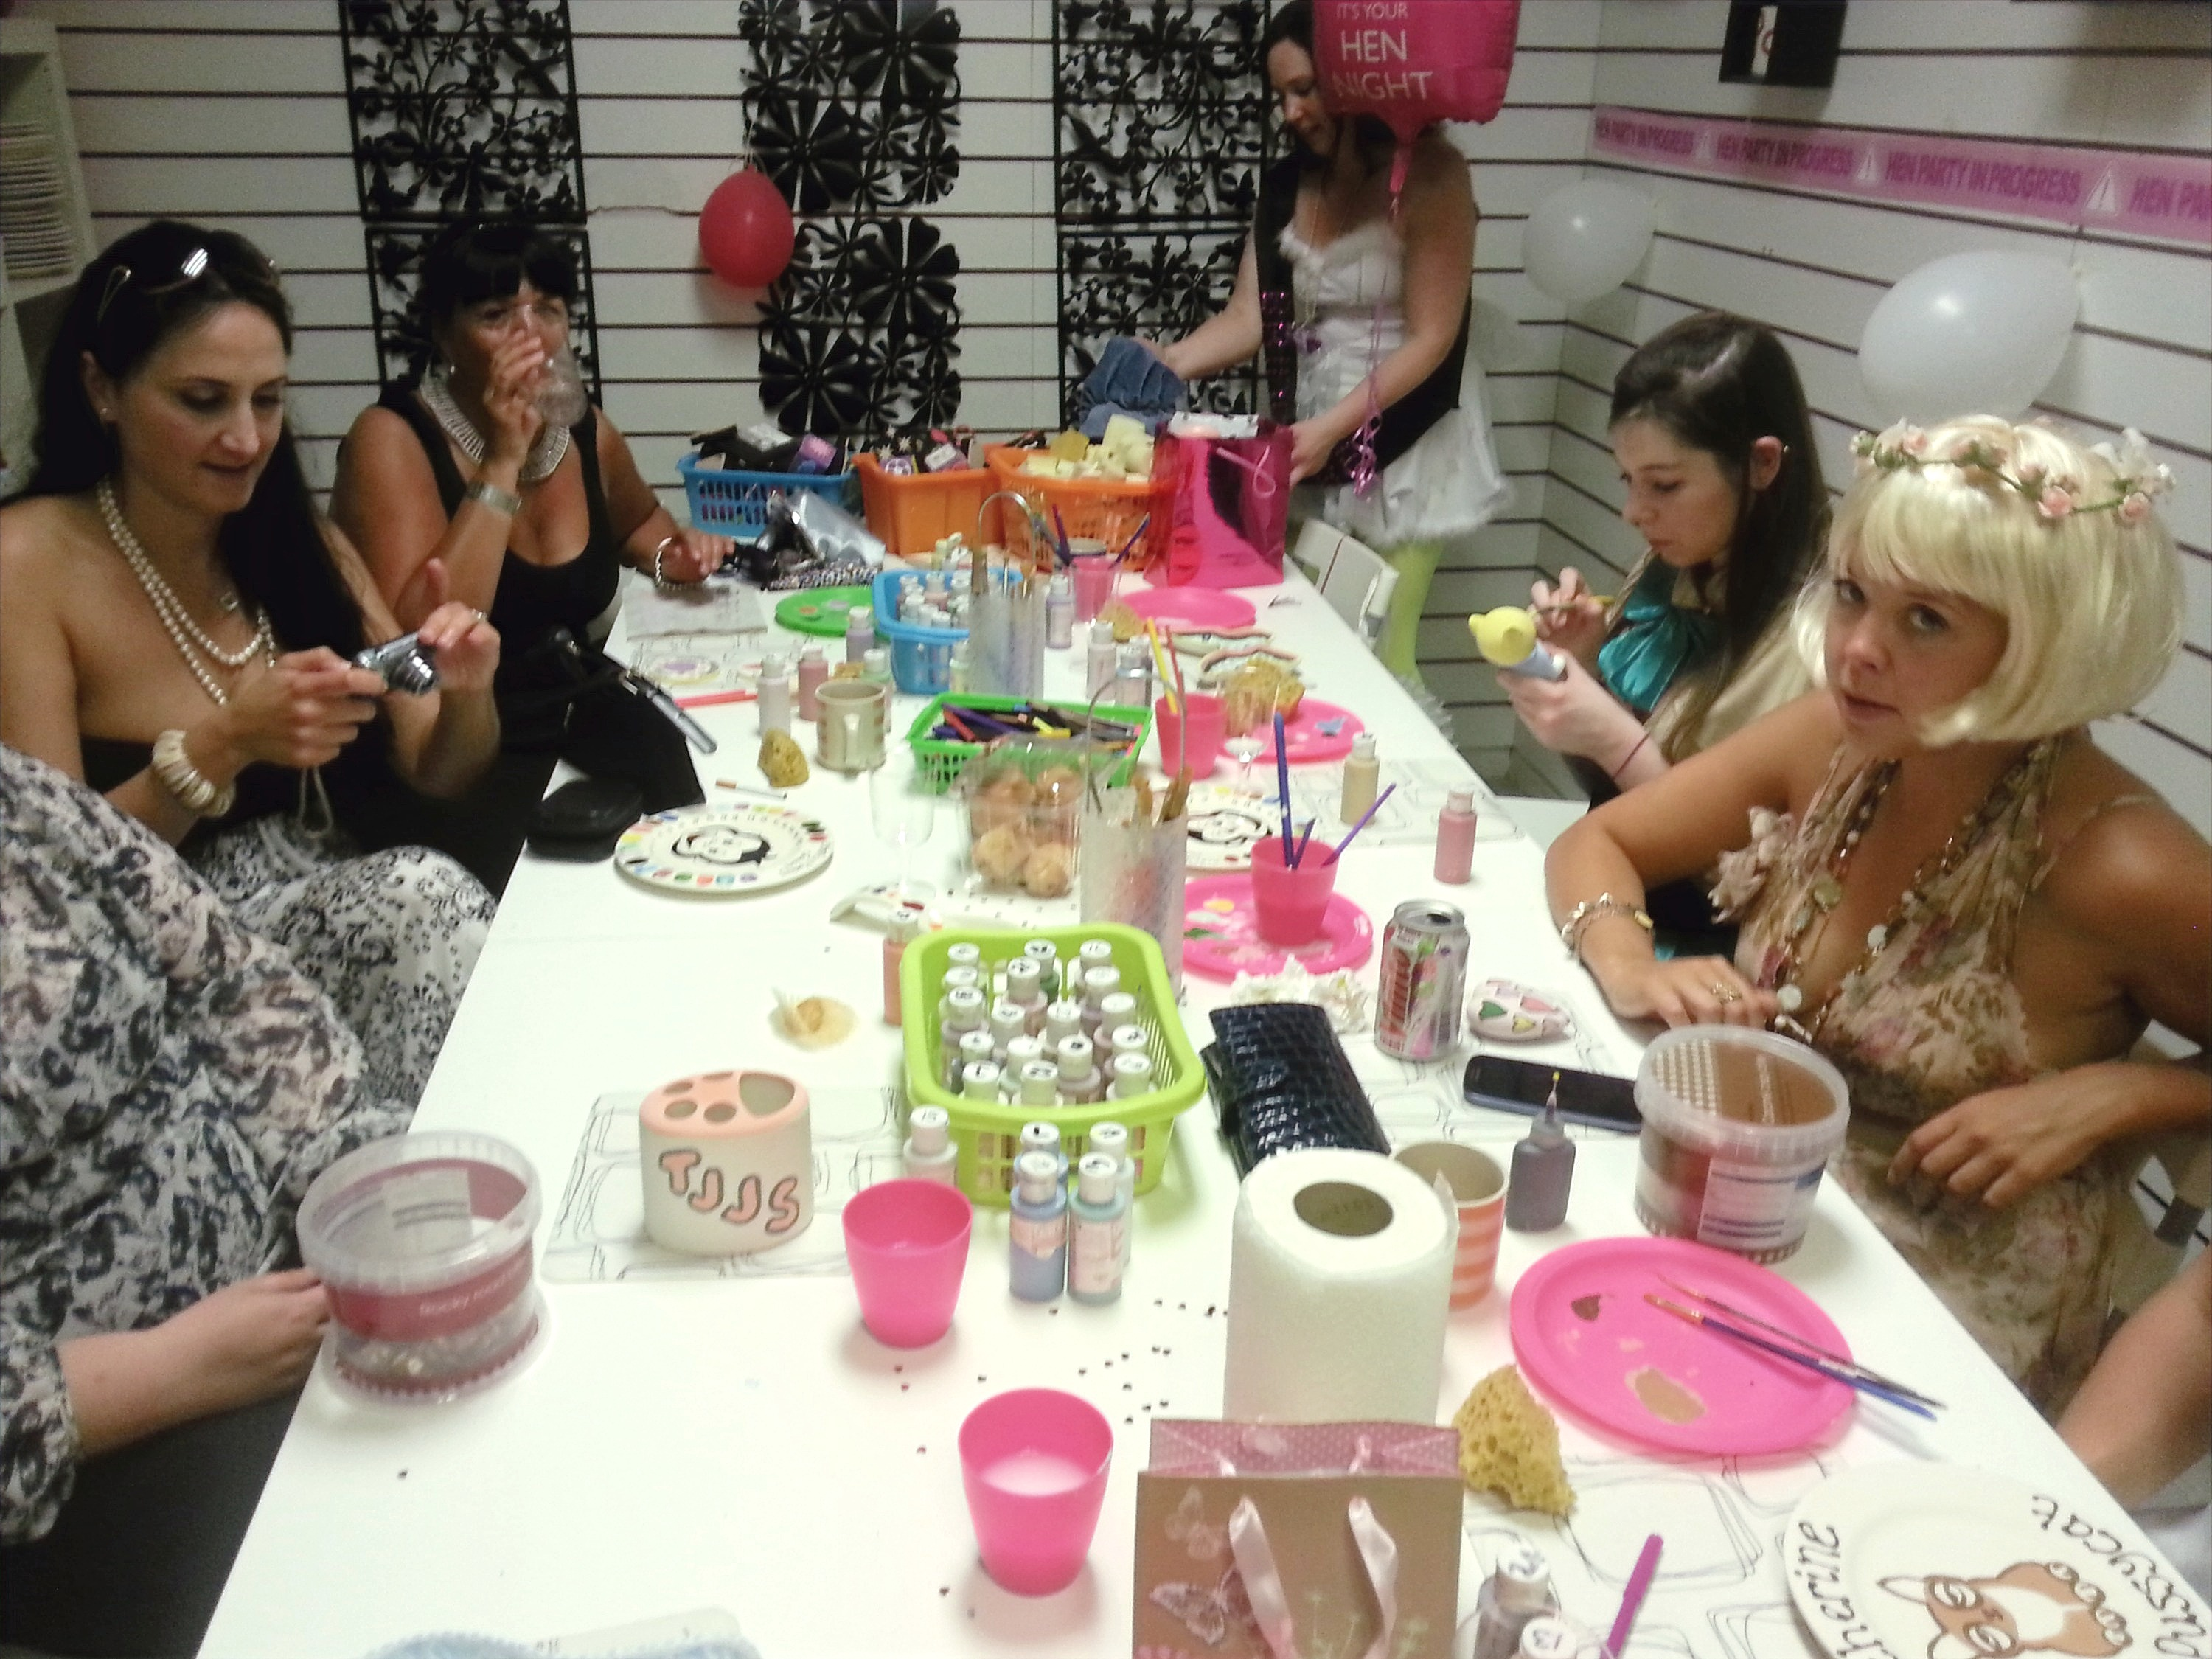 hen-party-pottery-painting.jpg